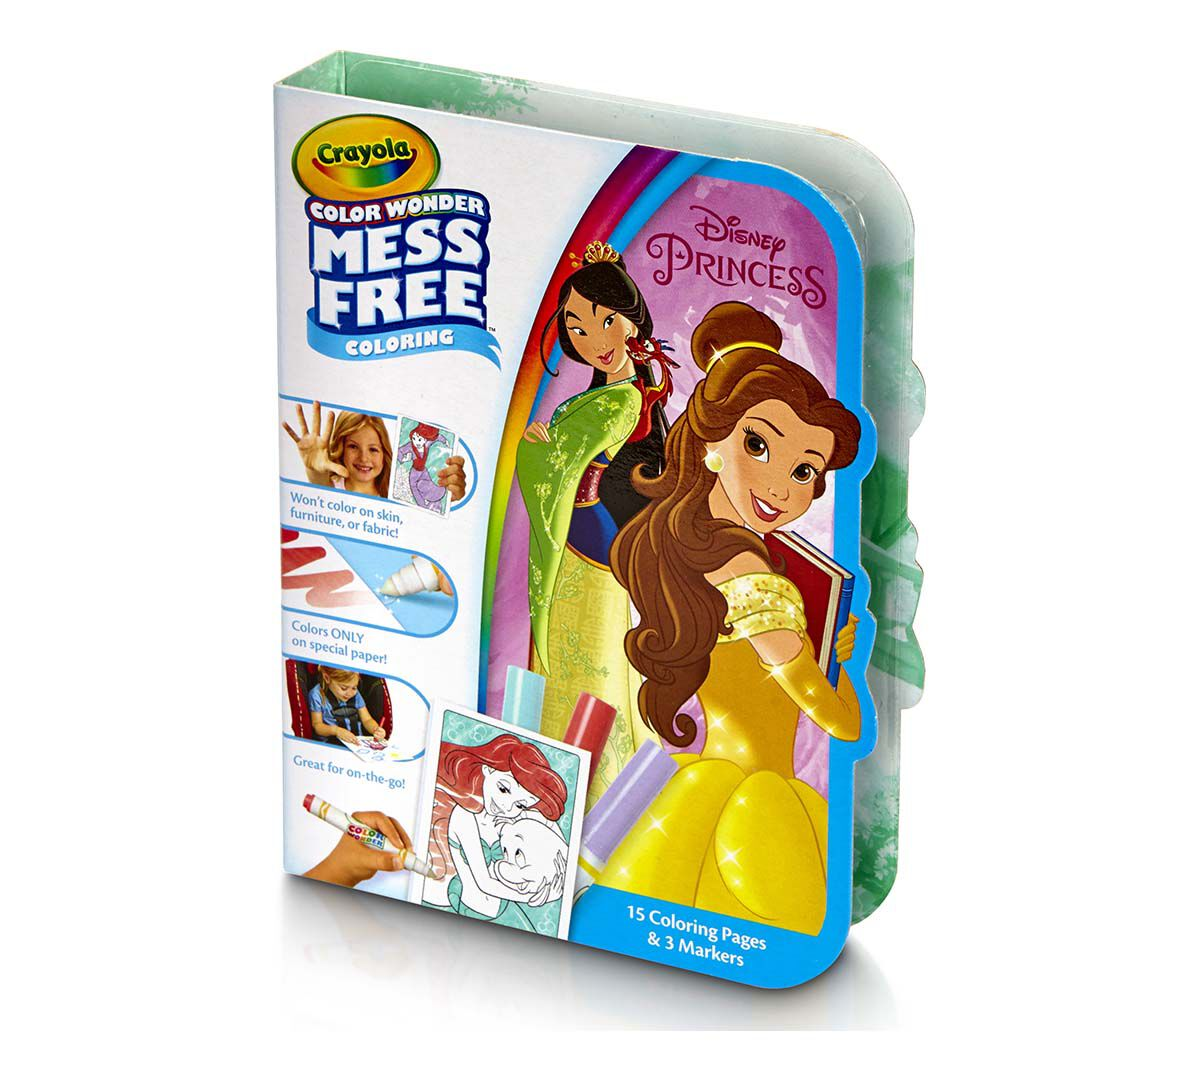 crayola disney princess color wonder on the go mess free